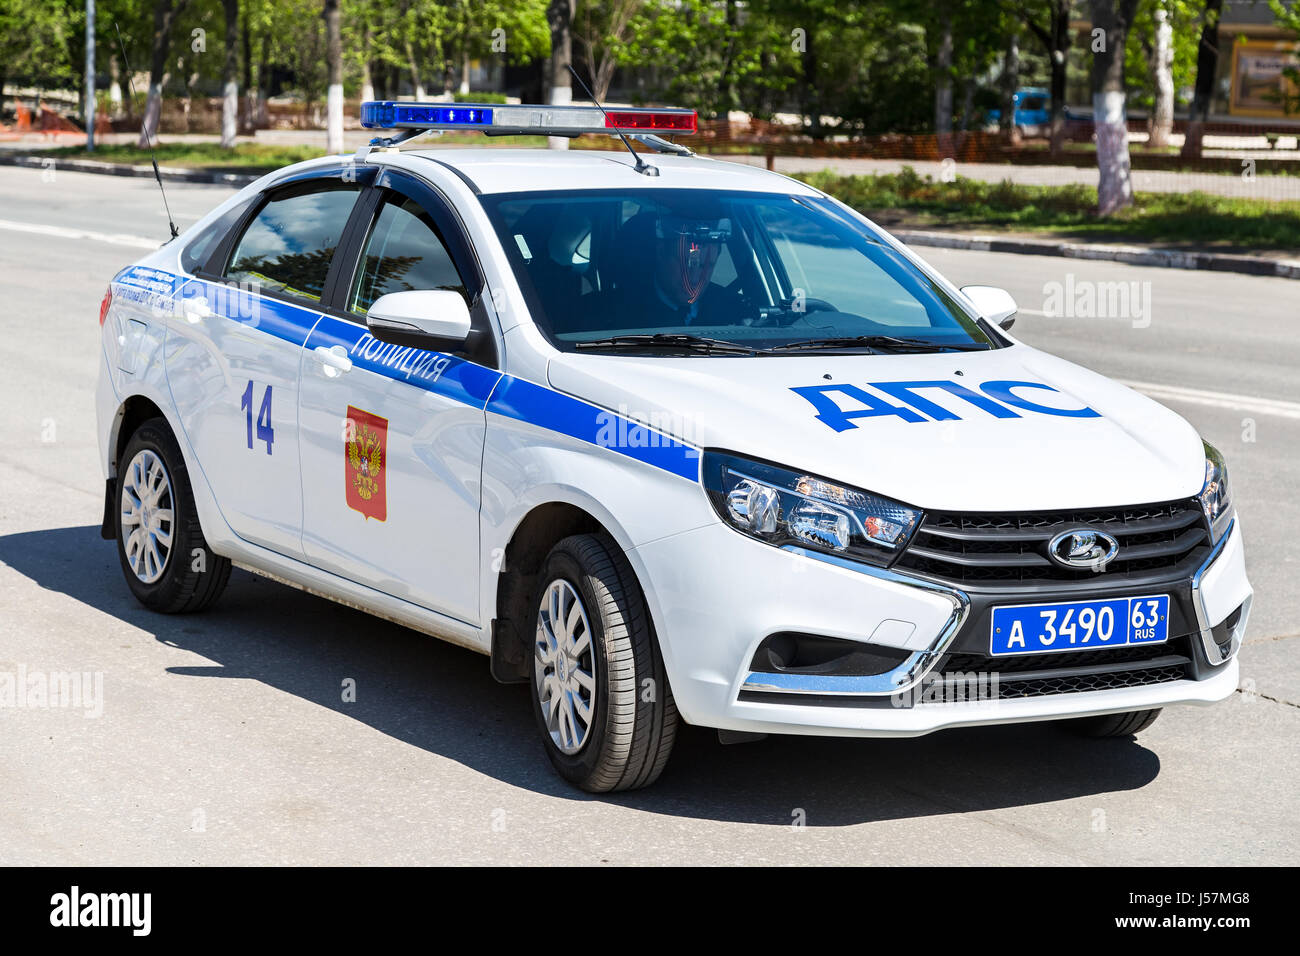 samara russia may 13 2017 russian police patrol car of the state stock photo royalty free. Black Bedroom Furniture Sets. Home Design Ideas